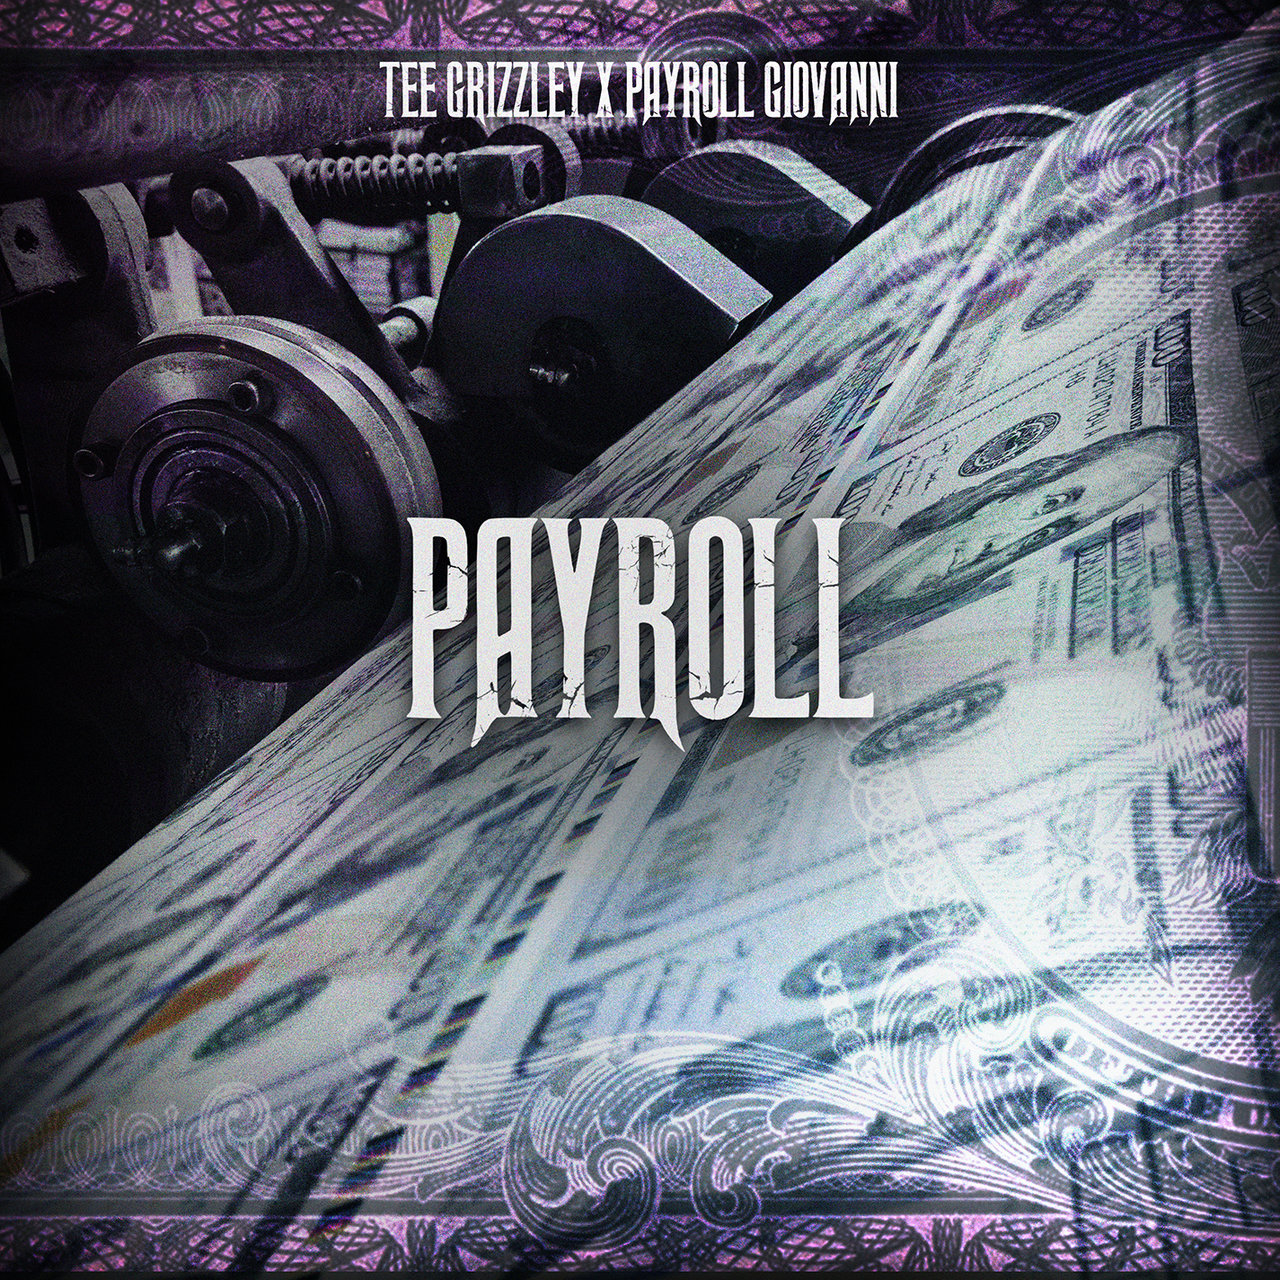 Tee Grizzley - Payroll (ft. Payroll Giovanni) (Cover)